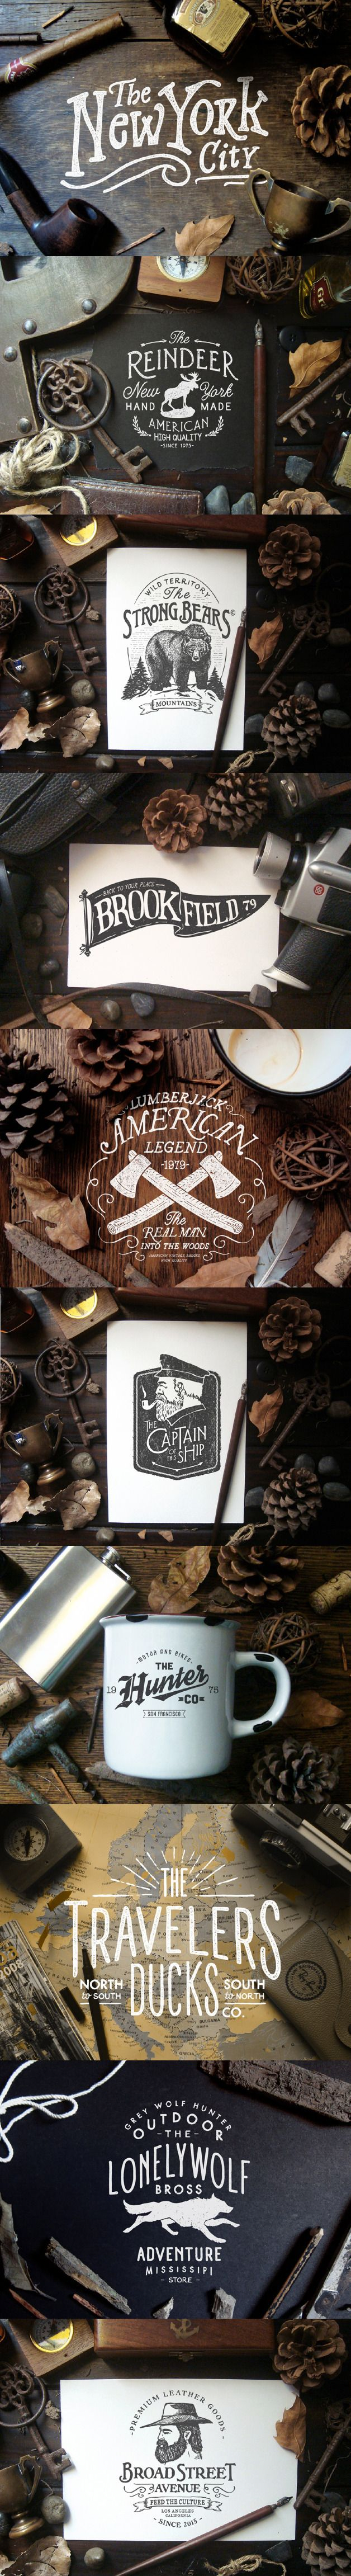 American Rustic // #Typography #GraphicDesign #Inspiration